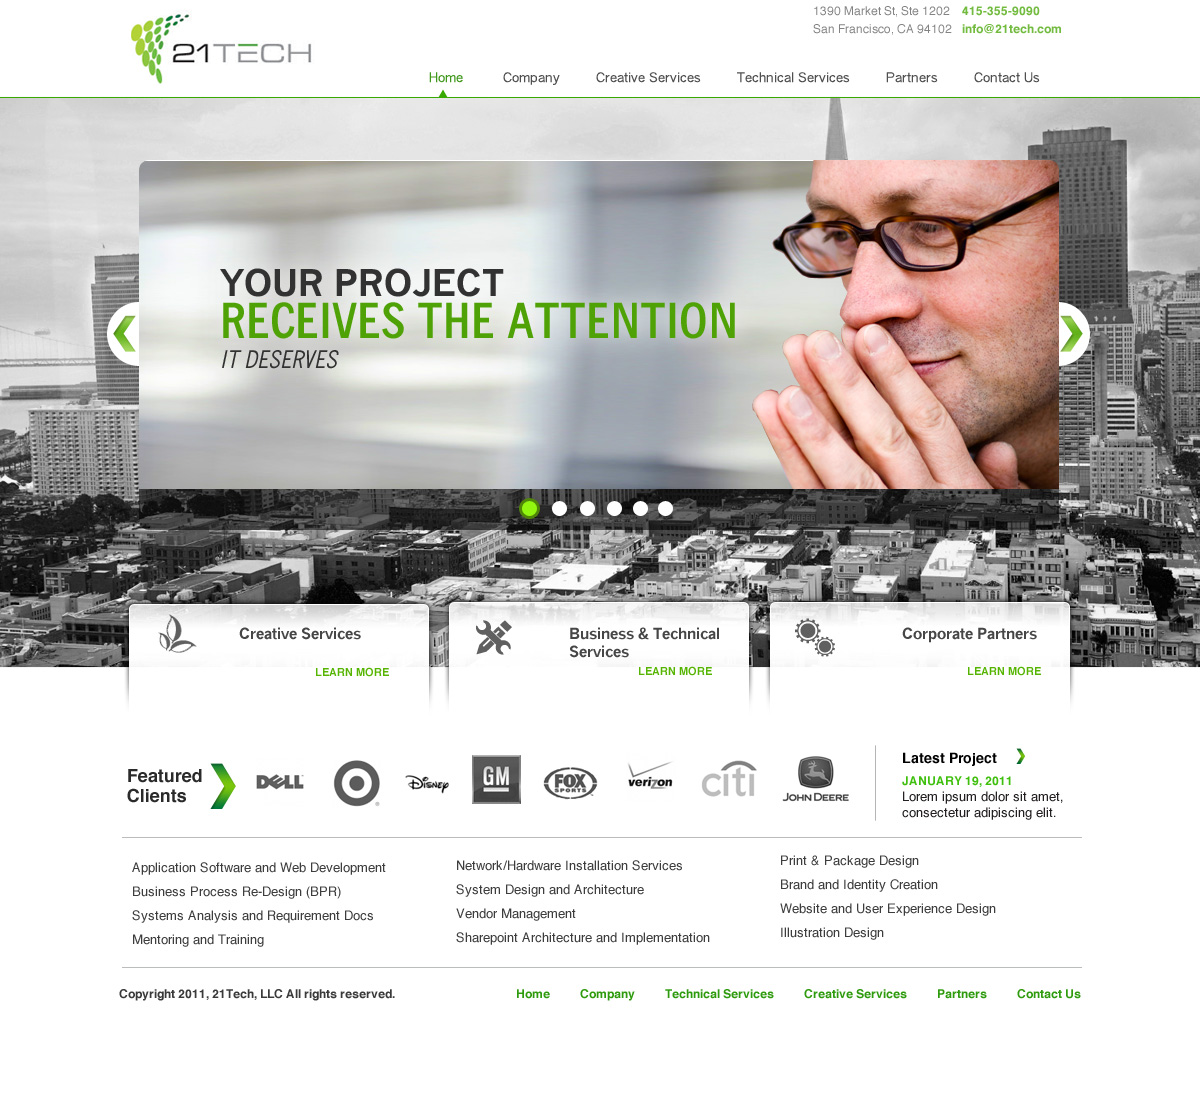 leading consulting firm 21tech web design project design 210770